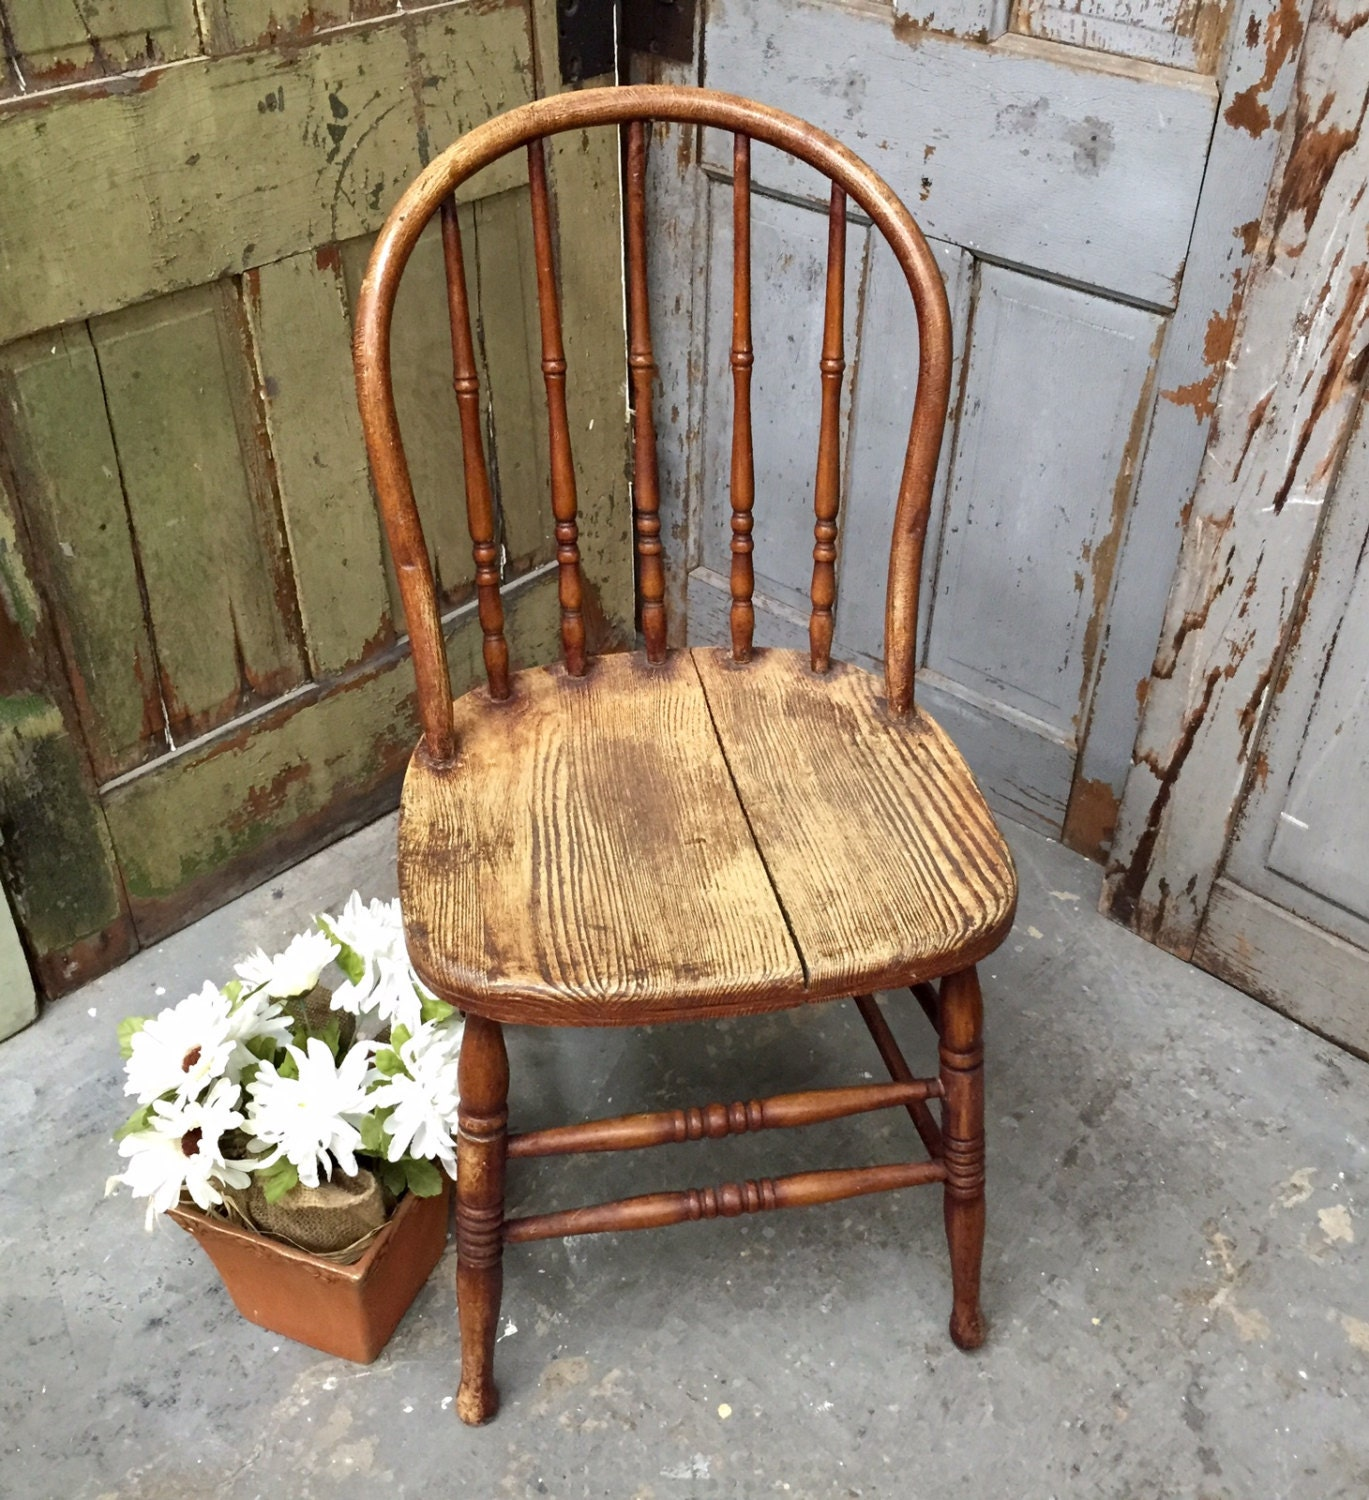 Antique Windsor Chair Rustic Chair Vintage Wooden Chair # Chaise Bois Vintage